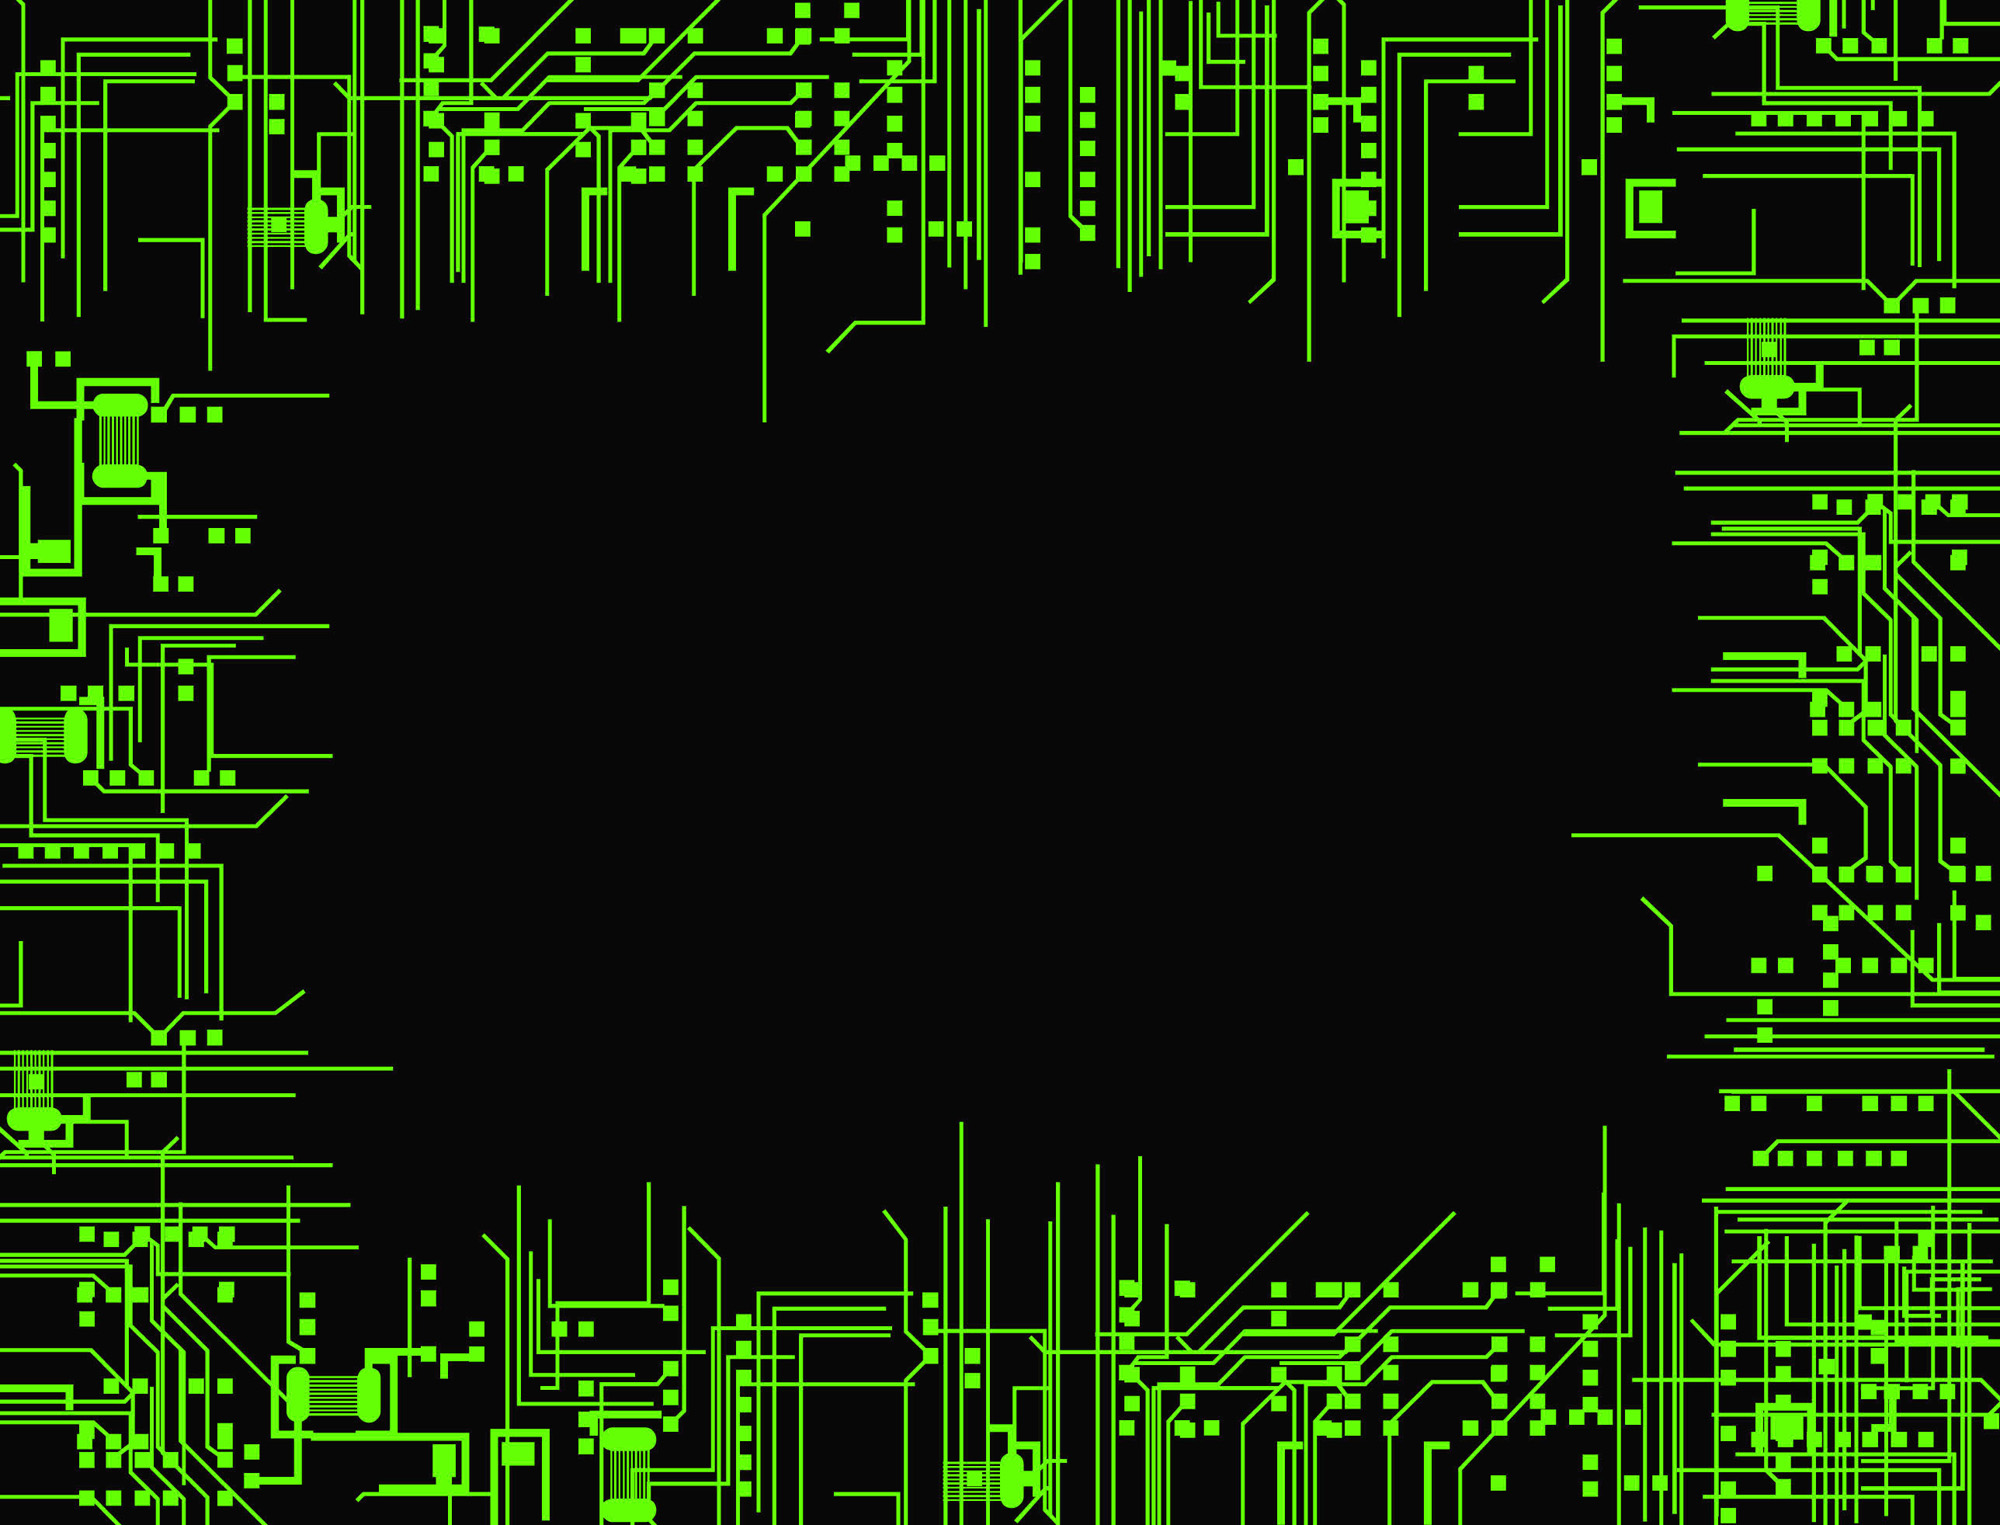 Free Stock Photo 481 Green Electronic Frame Freeimageslive Circuit Board Design Over Background Vector Illustration A Border Or Composed Of Tracks And Pathways